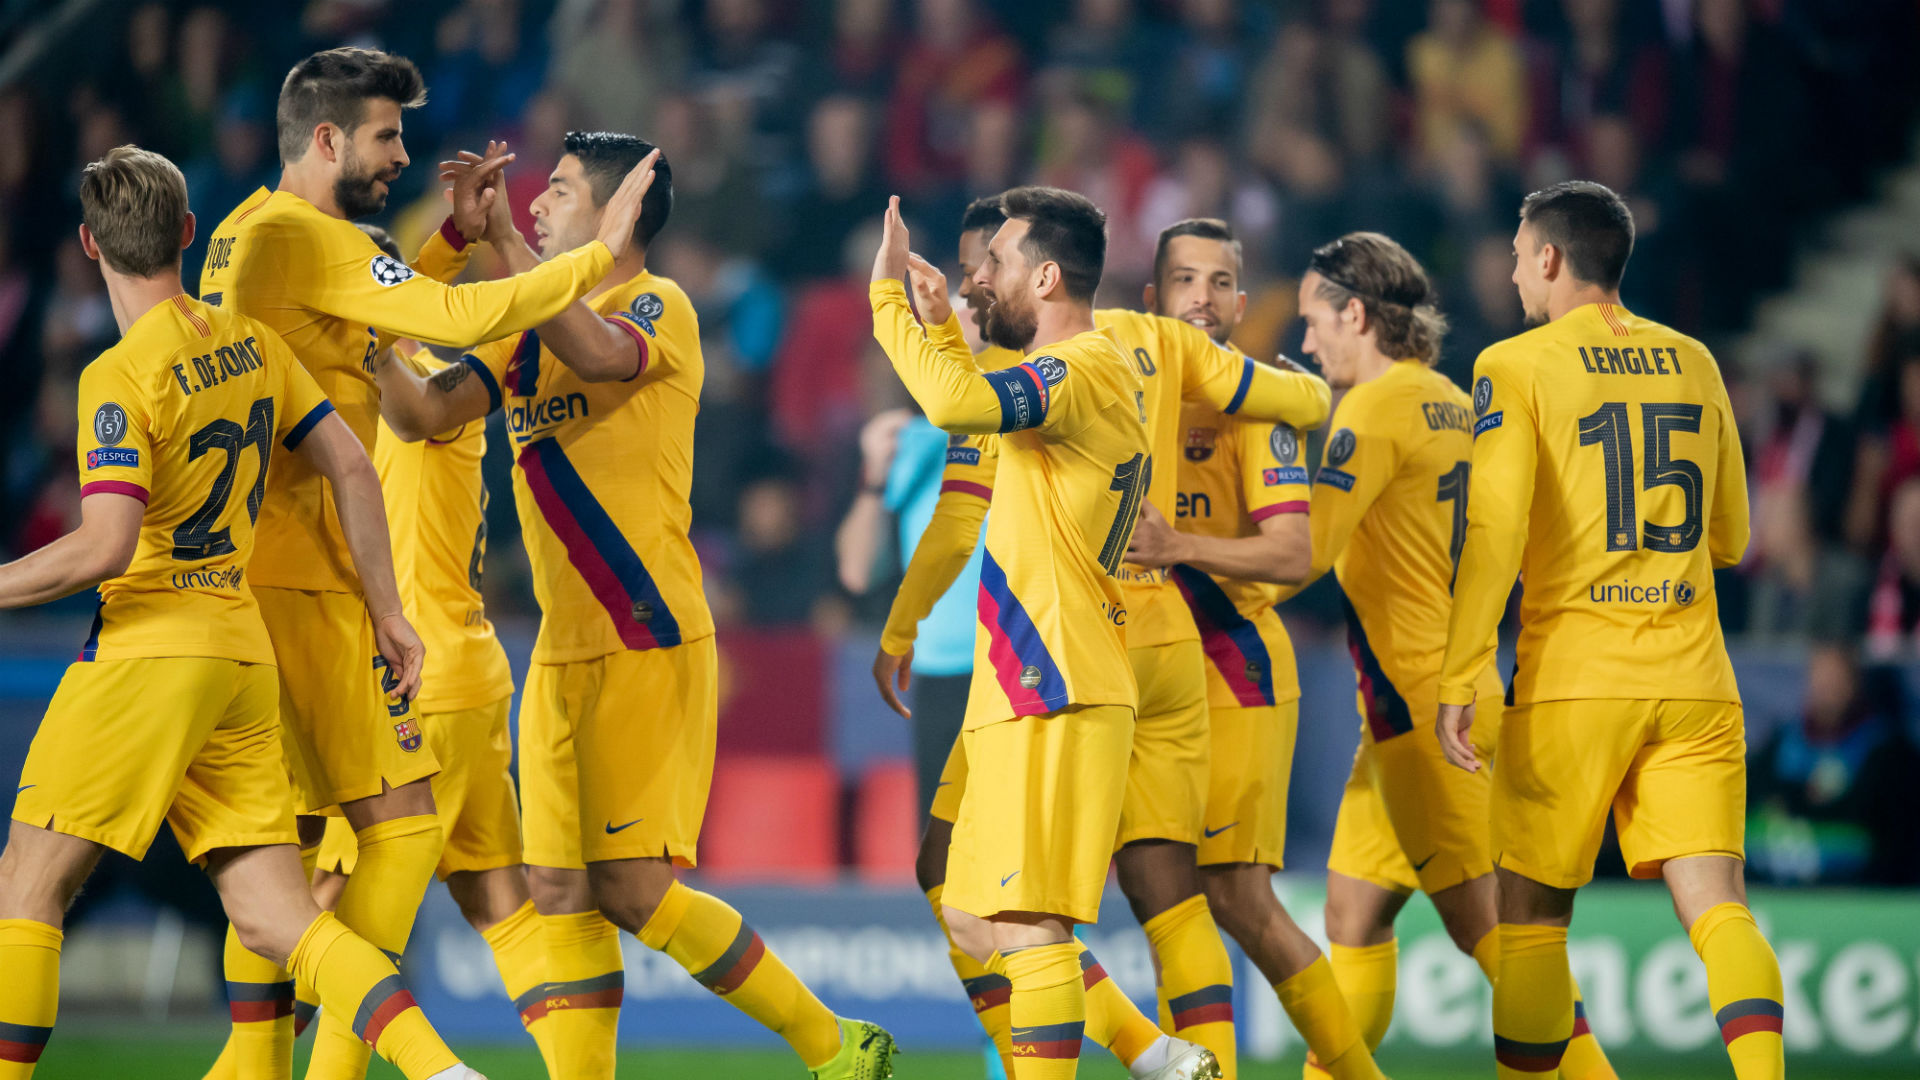 Report: Slavia Prague 1-2 Barcelona